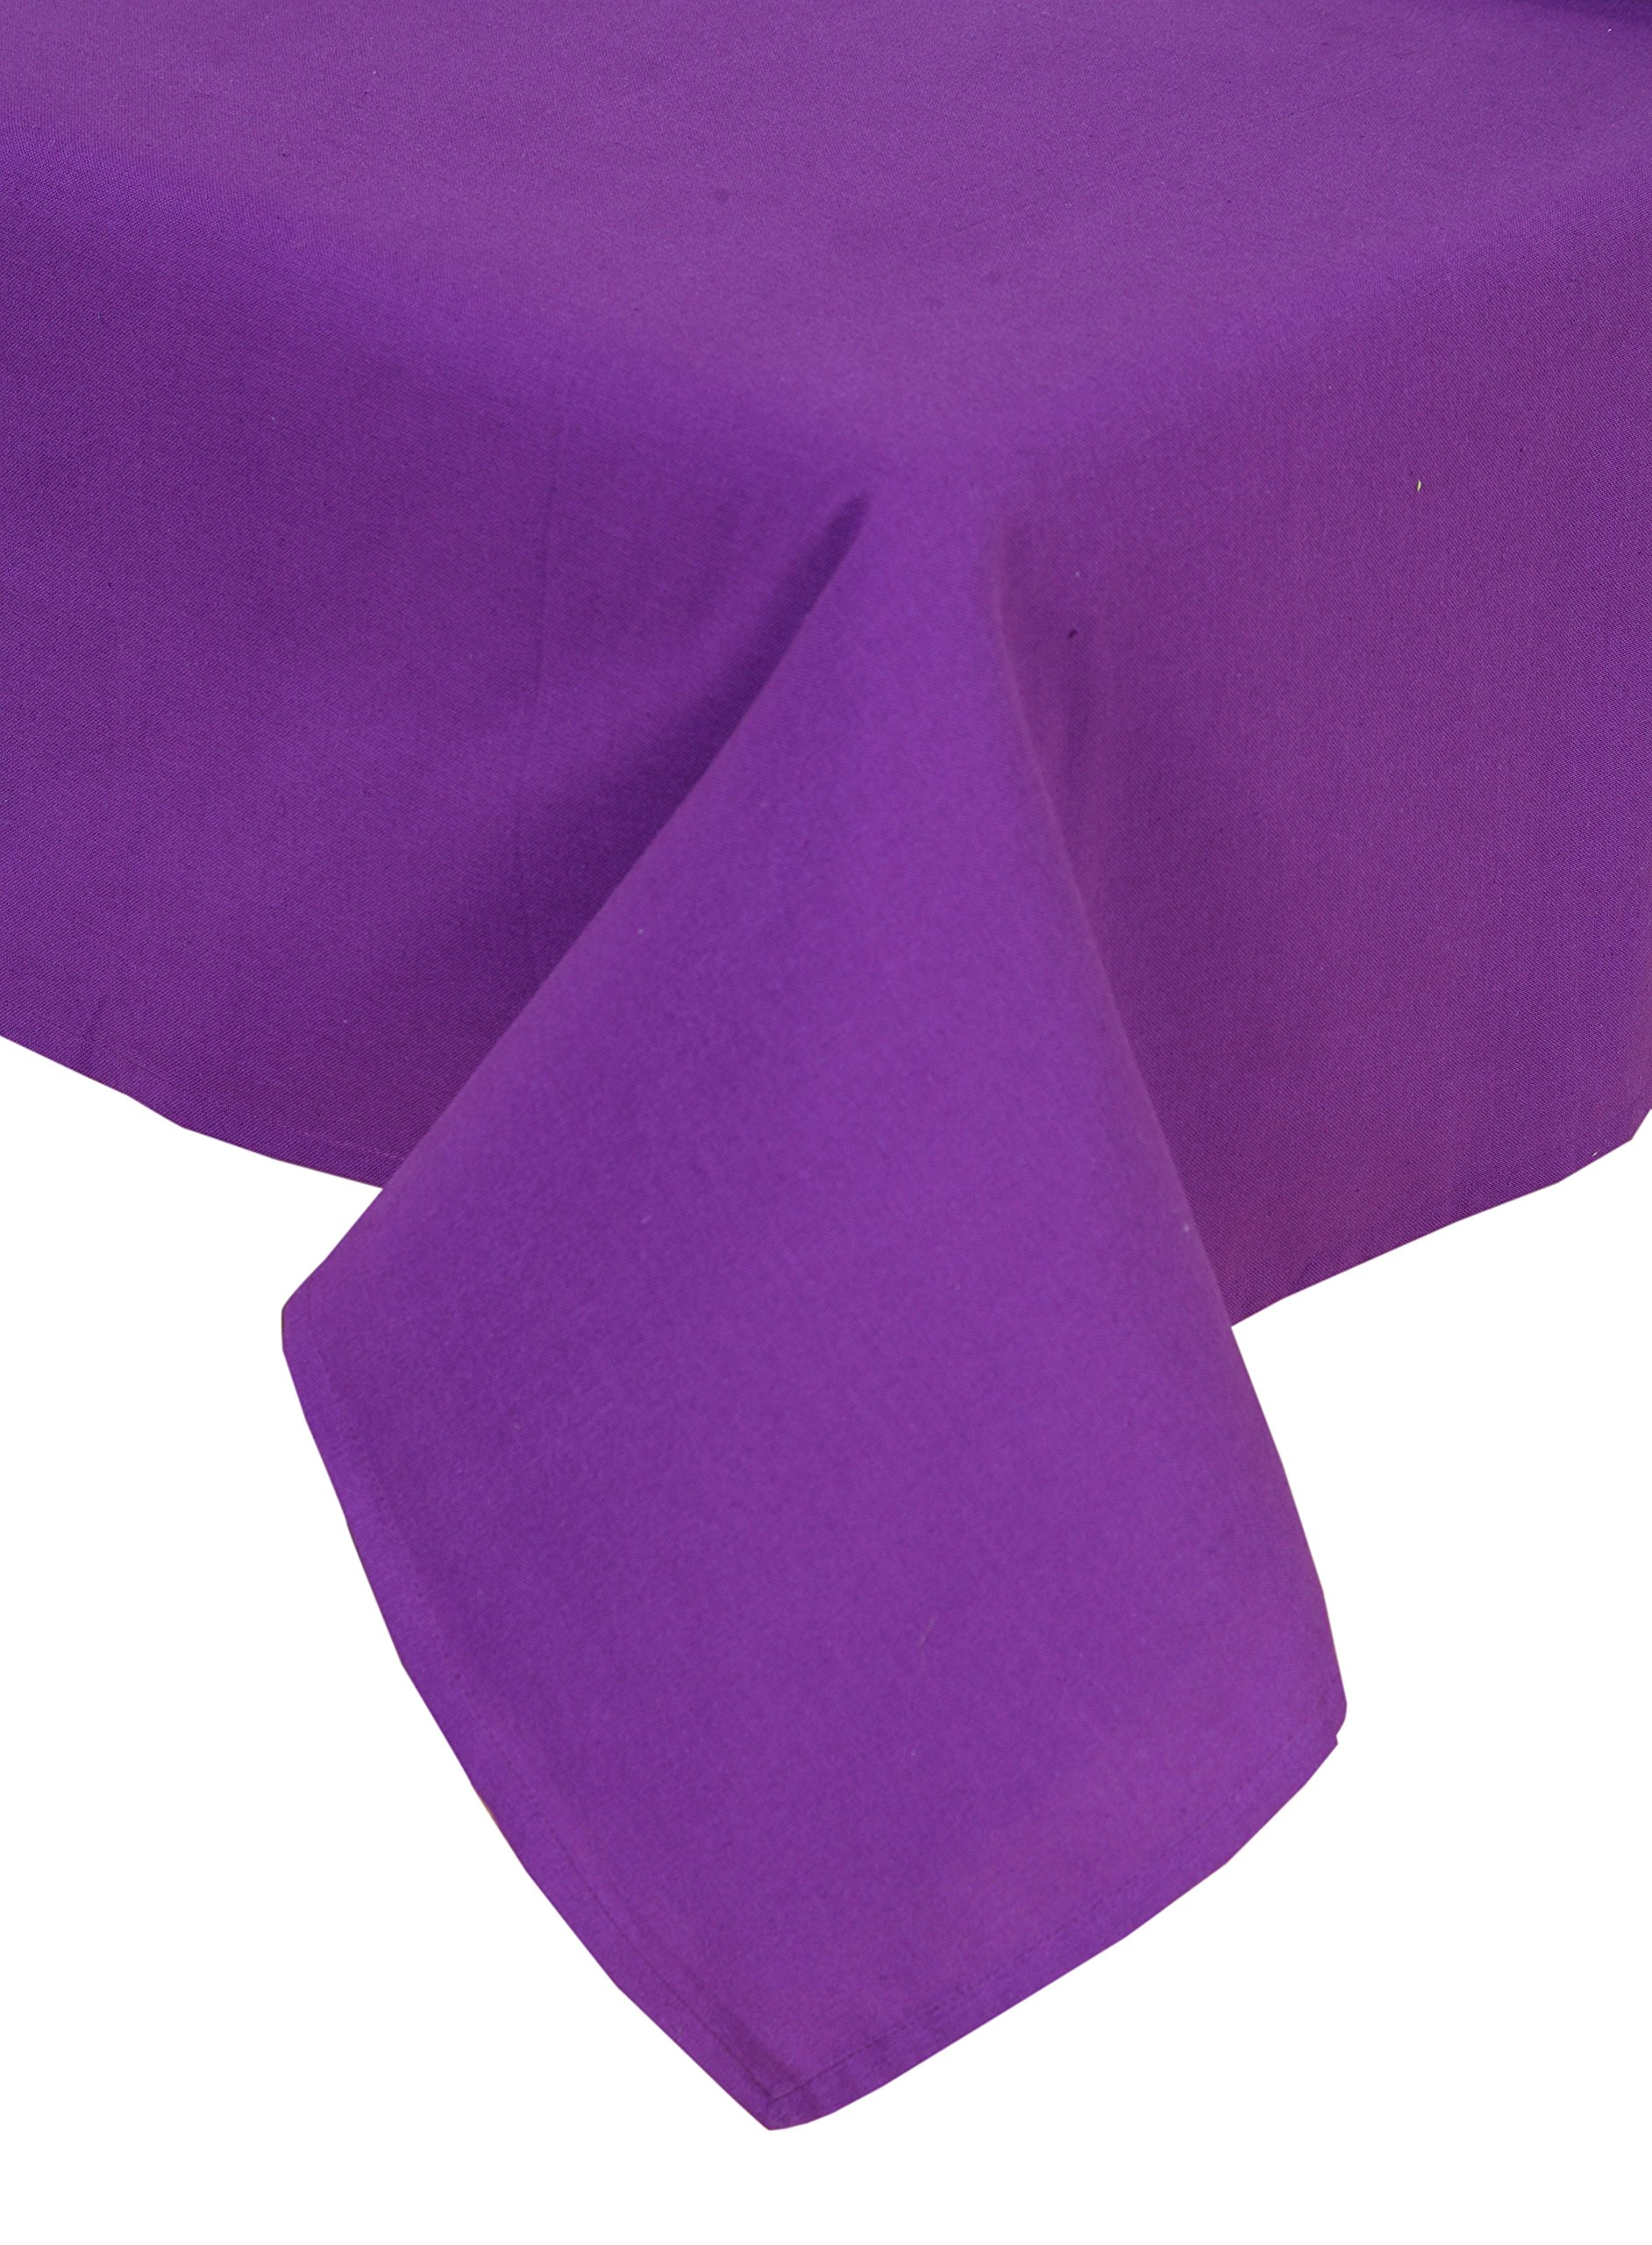 Linen Clubs 100% Cotton, Machine Washable, Everyday Kitchen Tablecloth For Dinner Parties, Summer & Outdoor Picnics - 52x72, Color - Plum, Set of 2 Pieces